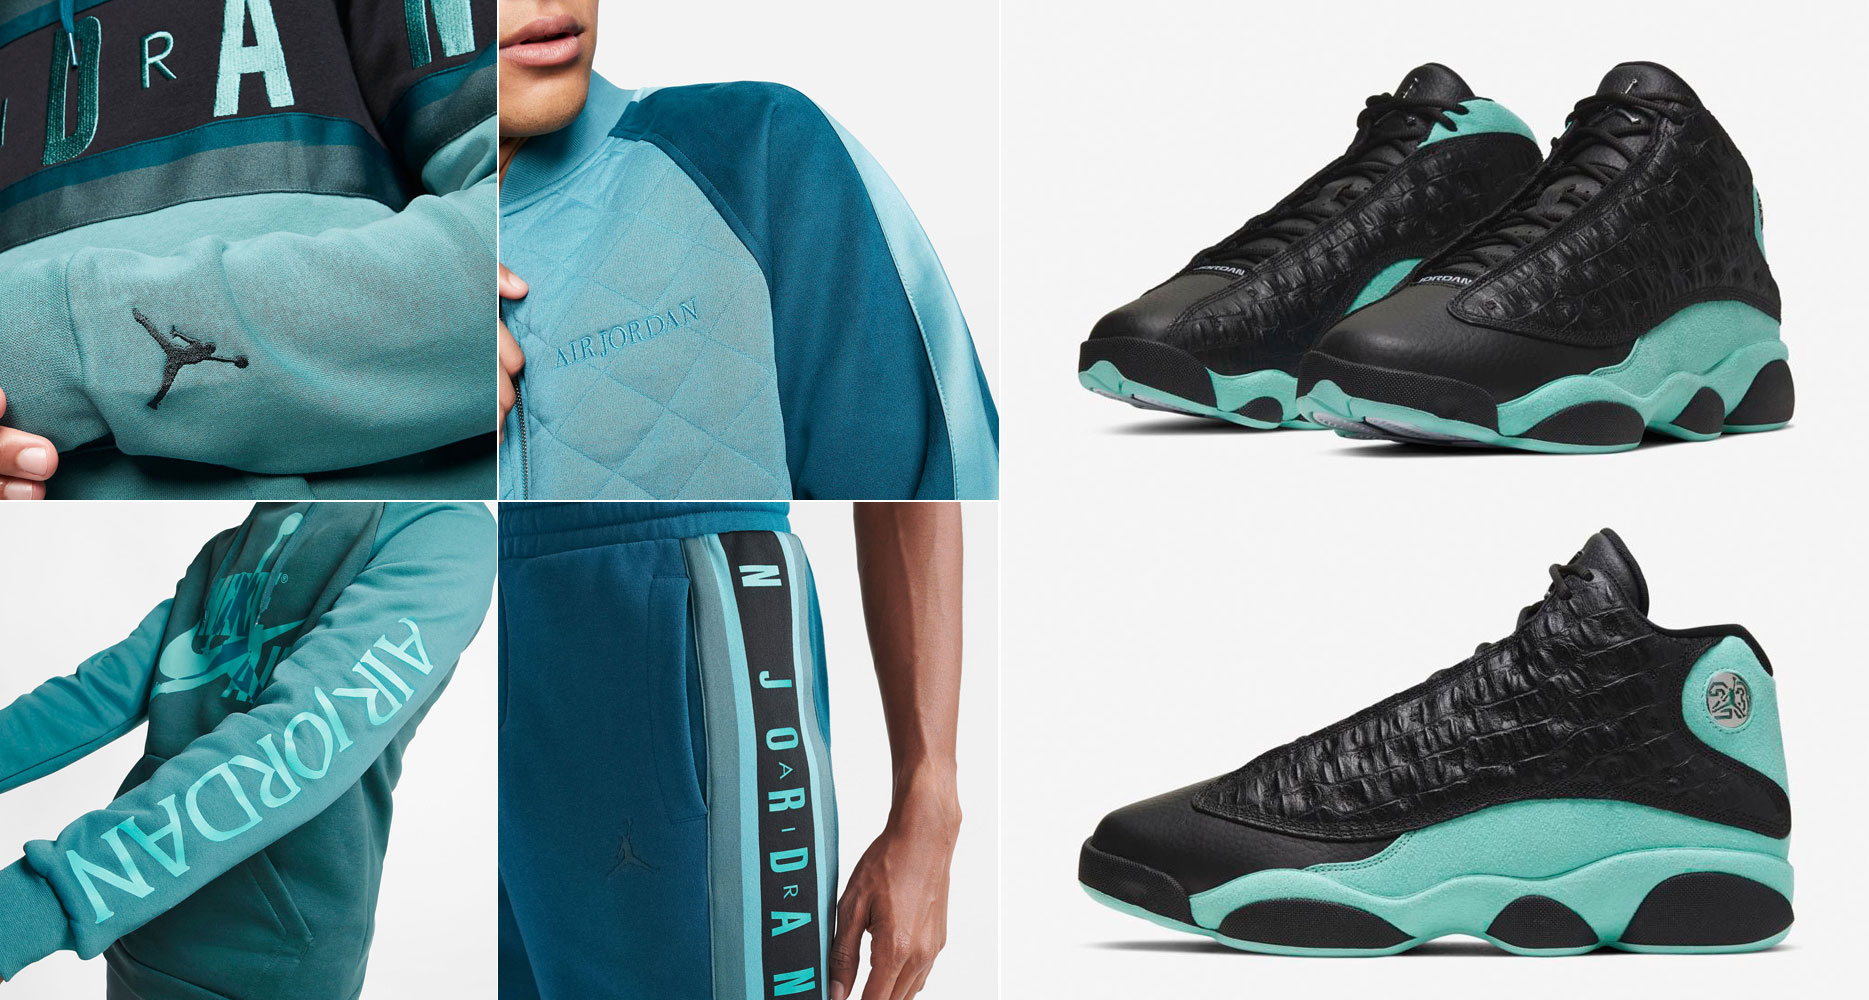 air-jordan-13-island-green-clothing-outfits